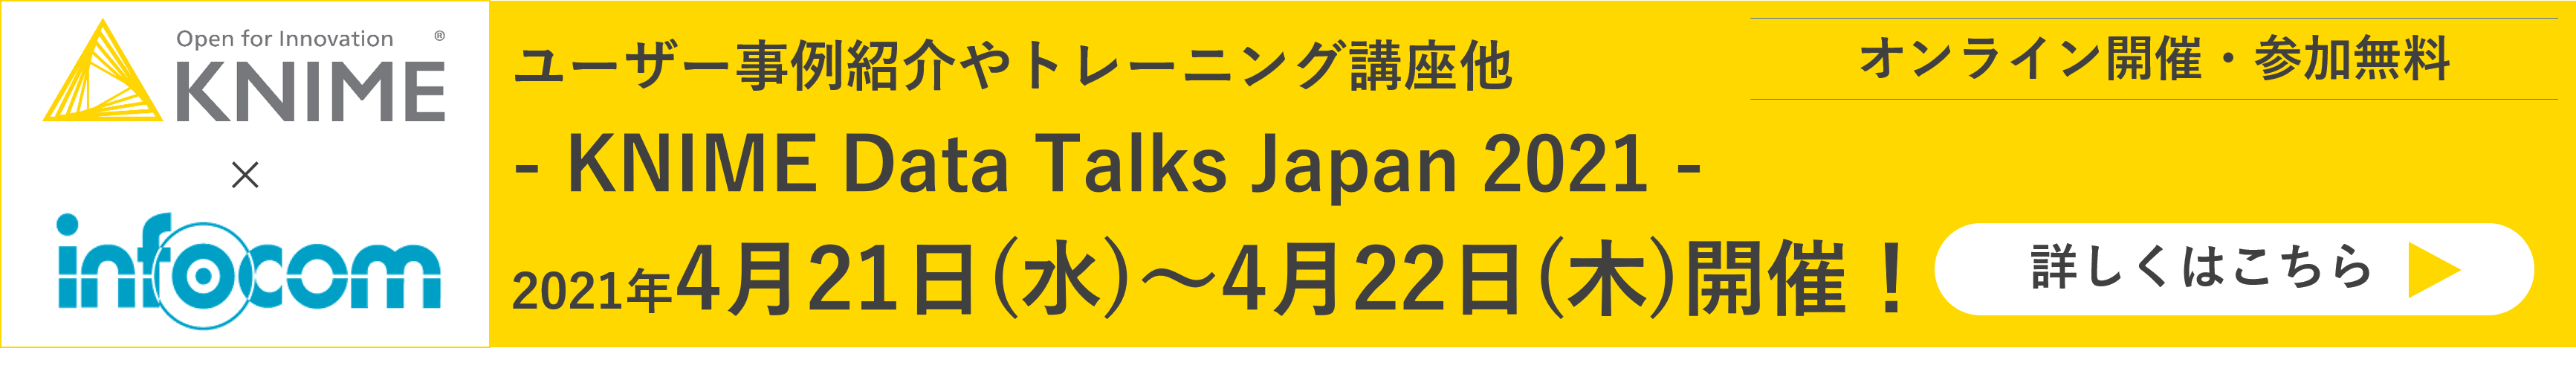 KNIME Data Talks Japan 2021